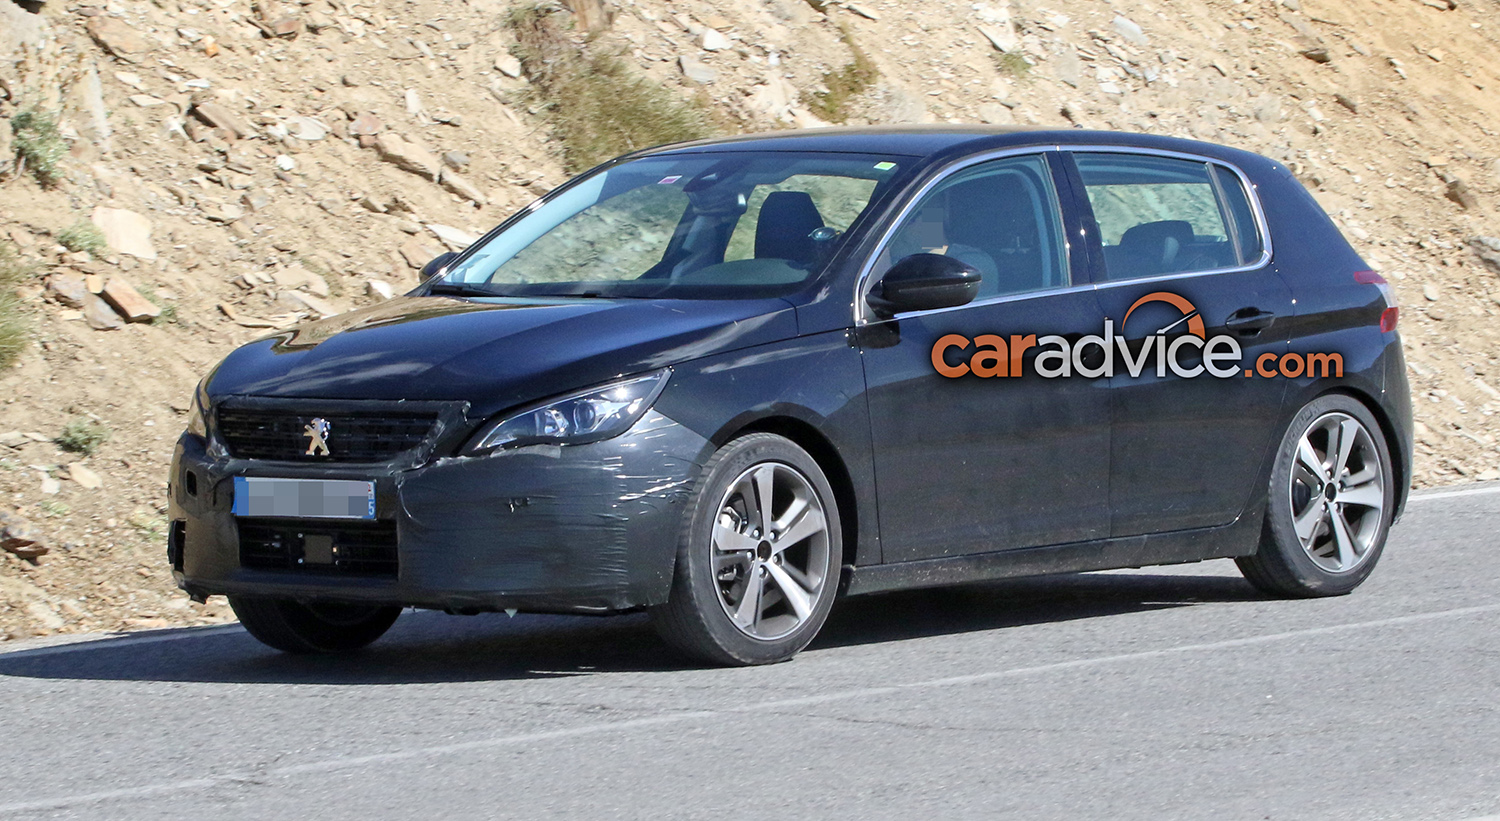 2017 Peugeot 308 facelift spied - Photos (1 of 9)